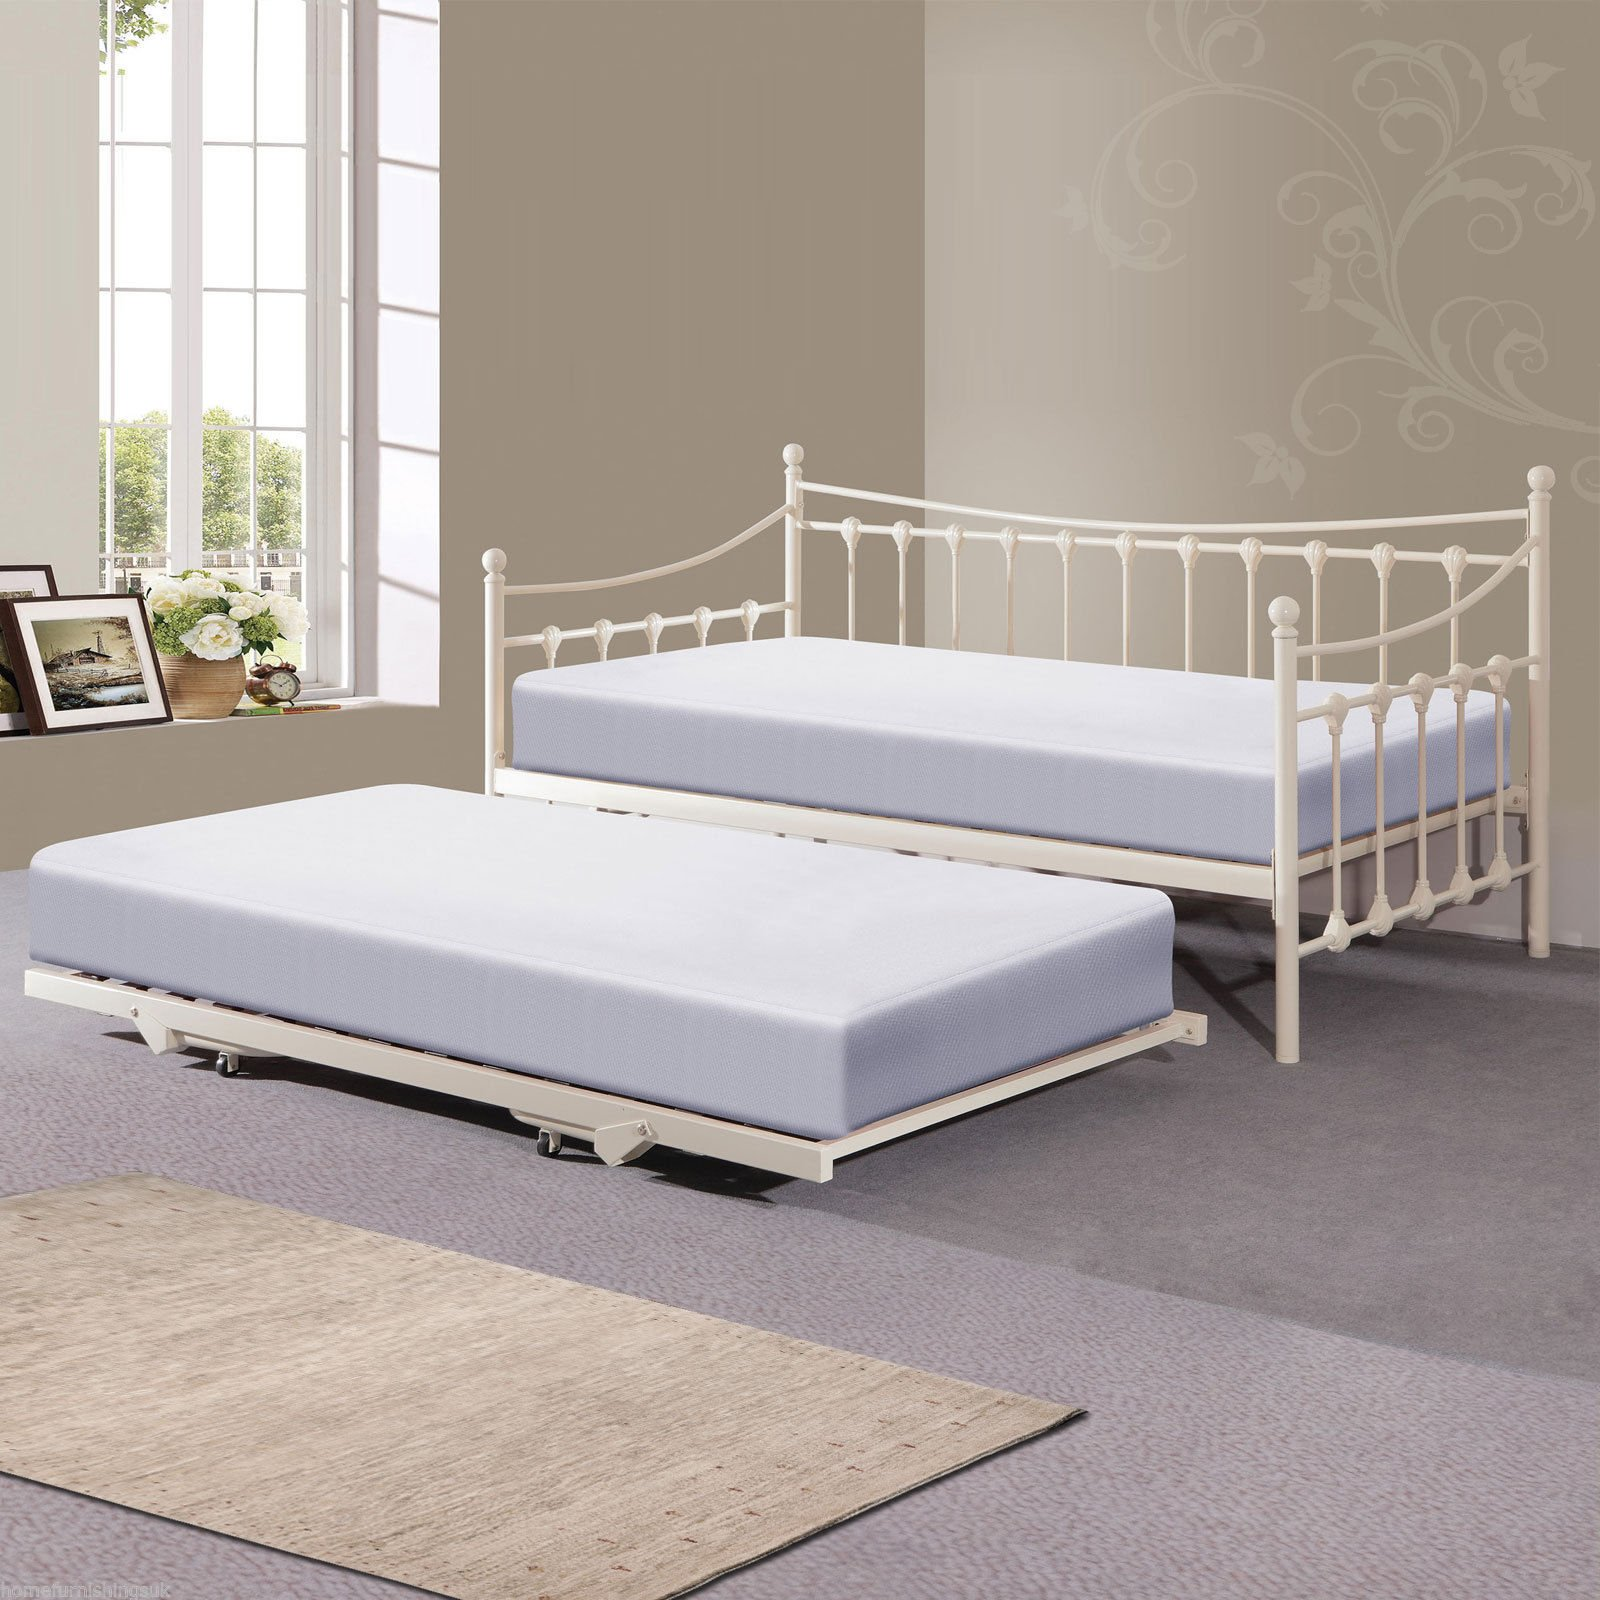 - Hf4you Memphis Day Bed With Trundle - 3FT Single - Ivory - X2